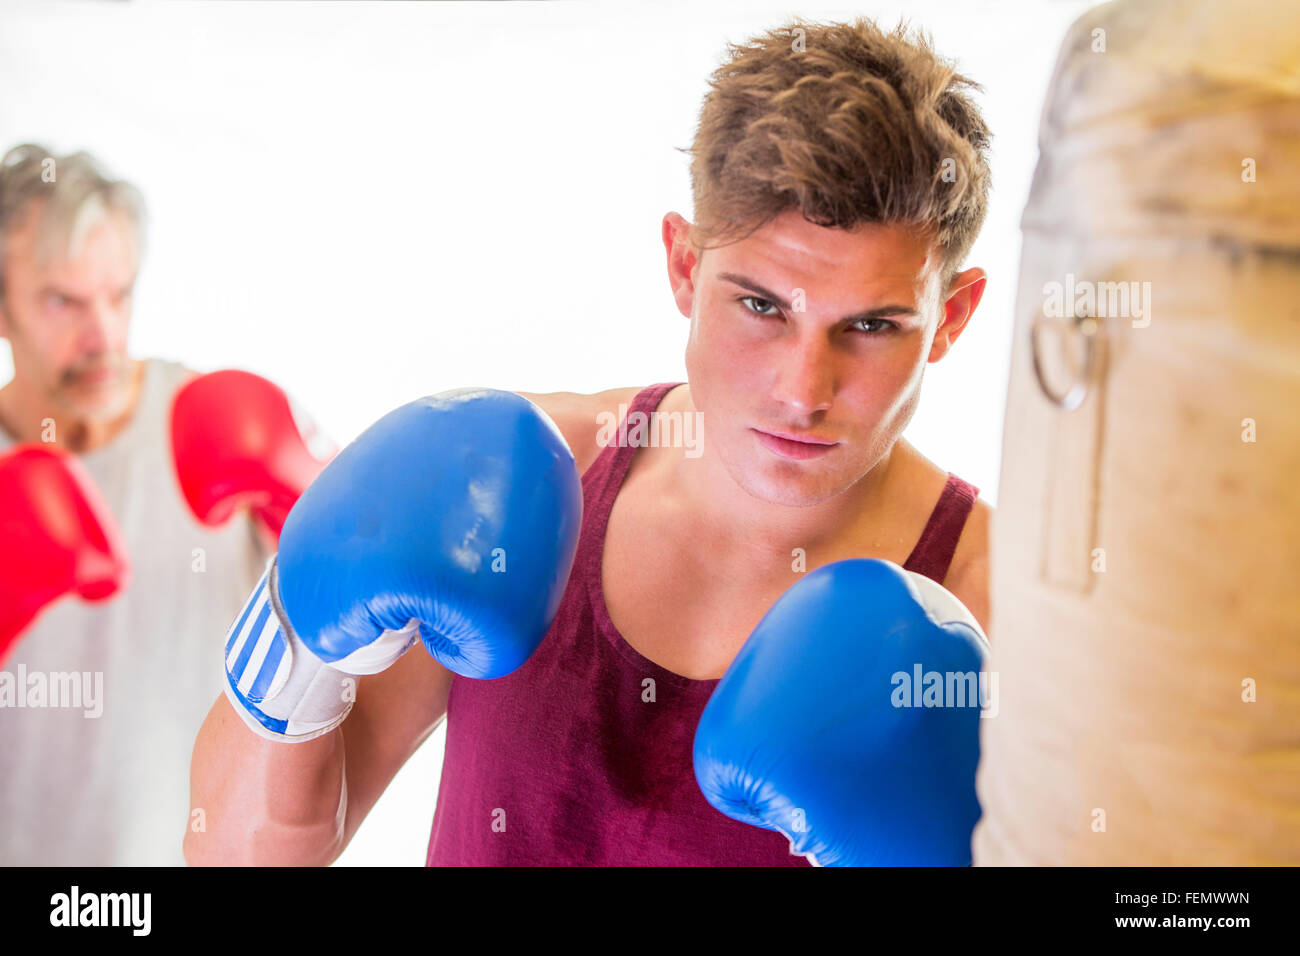 Attractive young man in a boxing stance with gloves and a punching bag - Stock Image